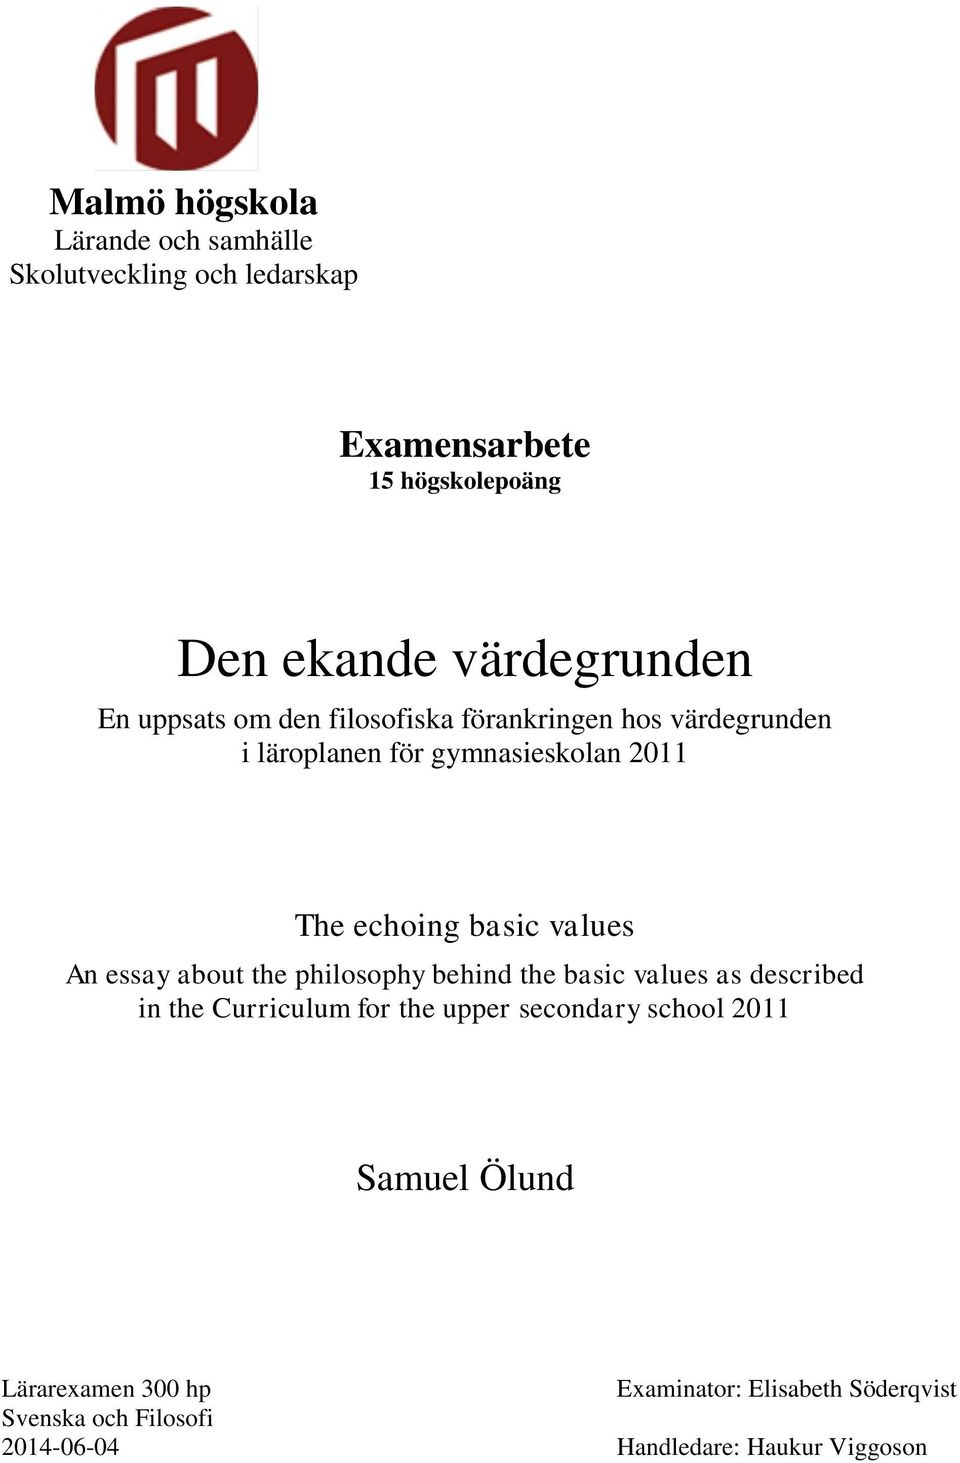 An essay about the philosophy behind the basic values as described in the Curriculum for the upper secondary school 2011